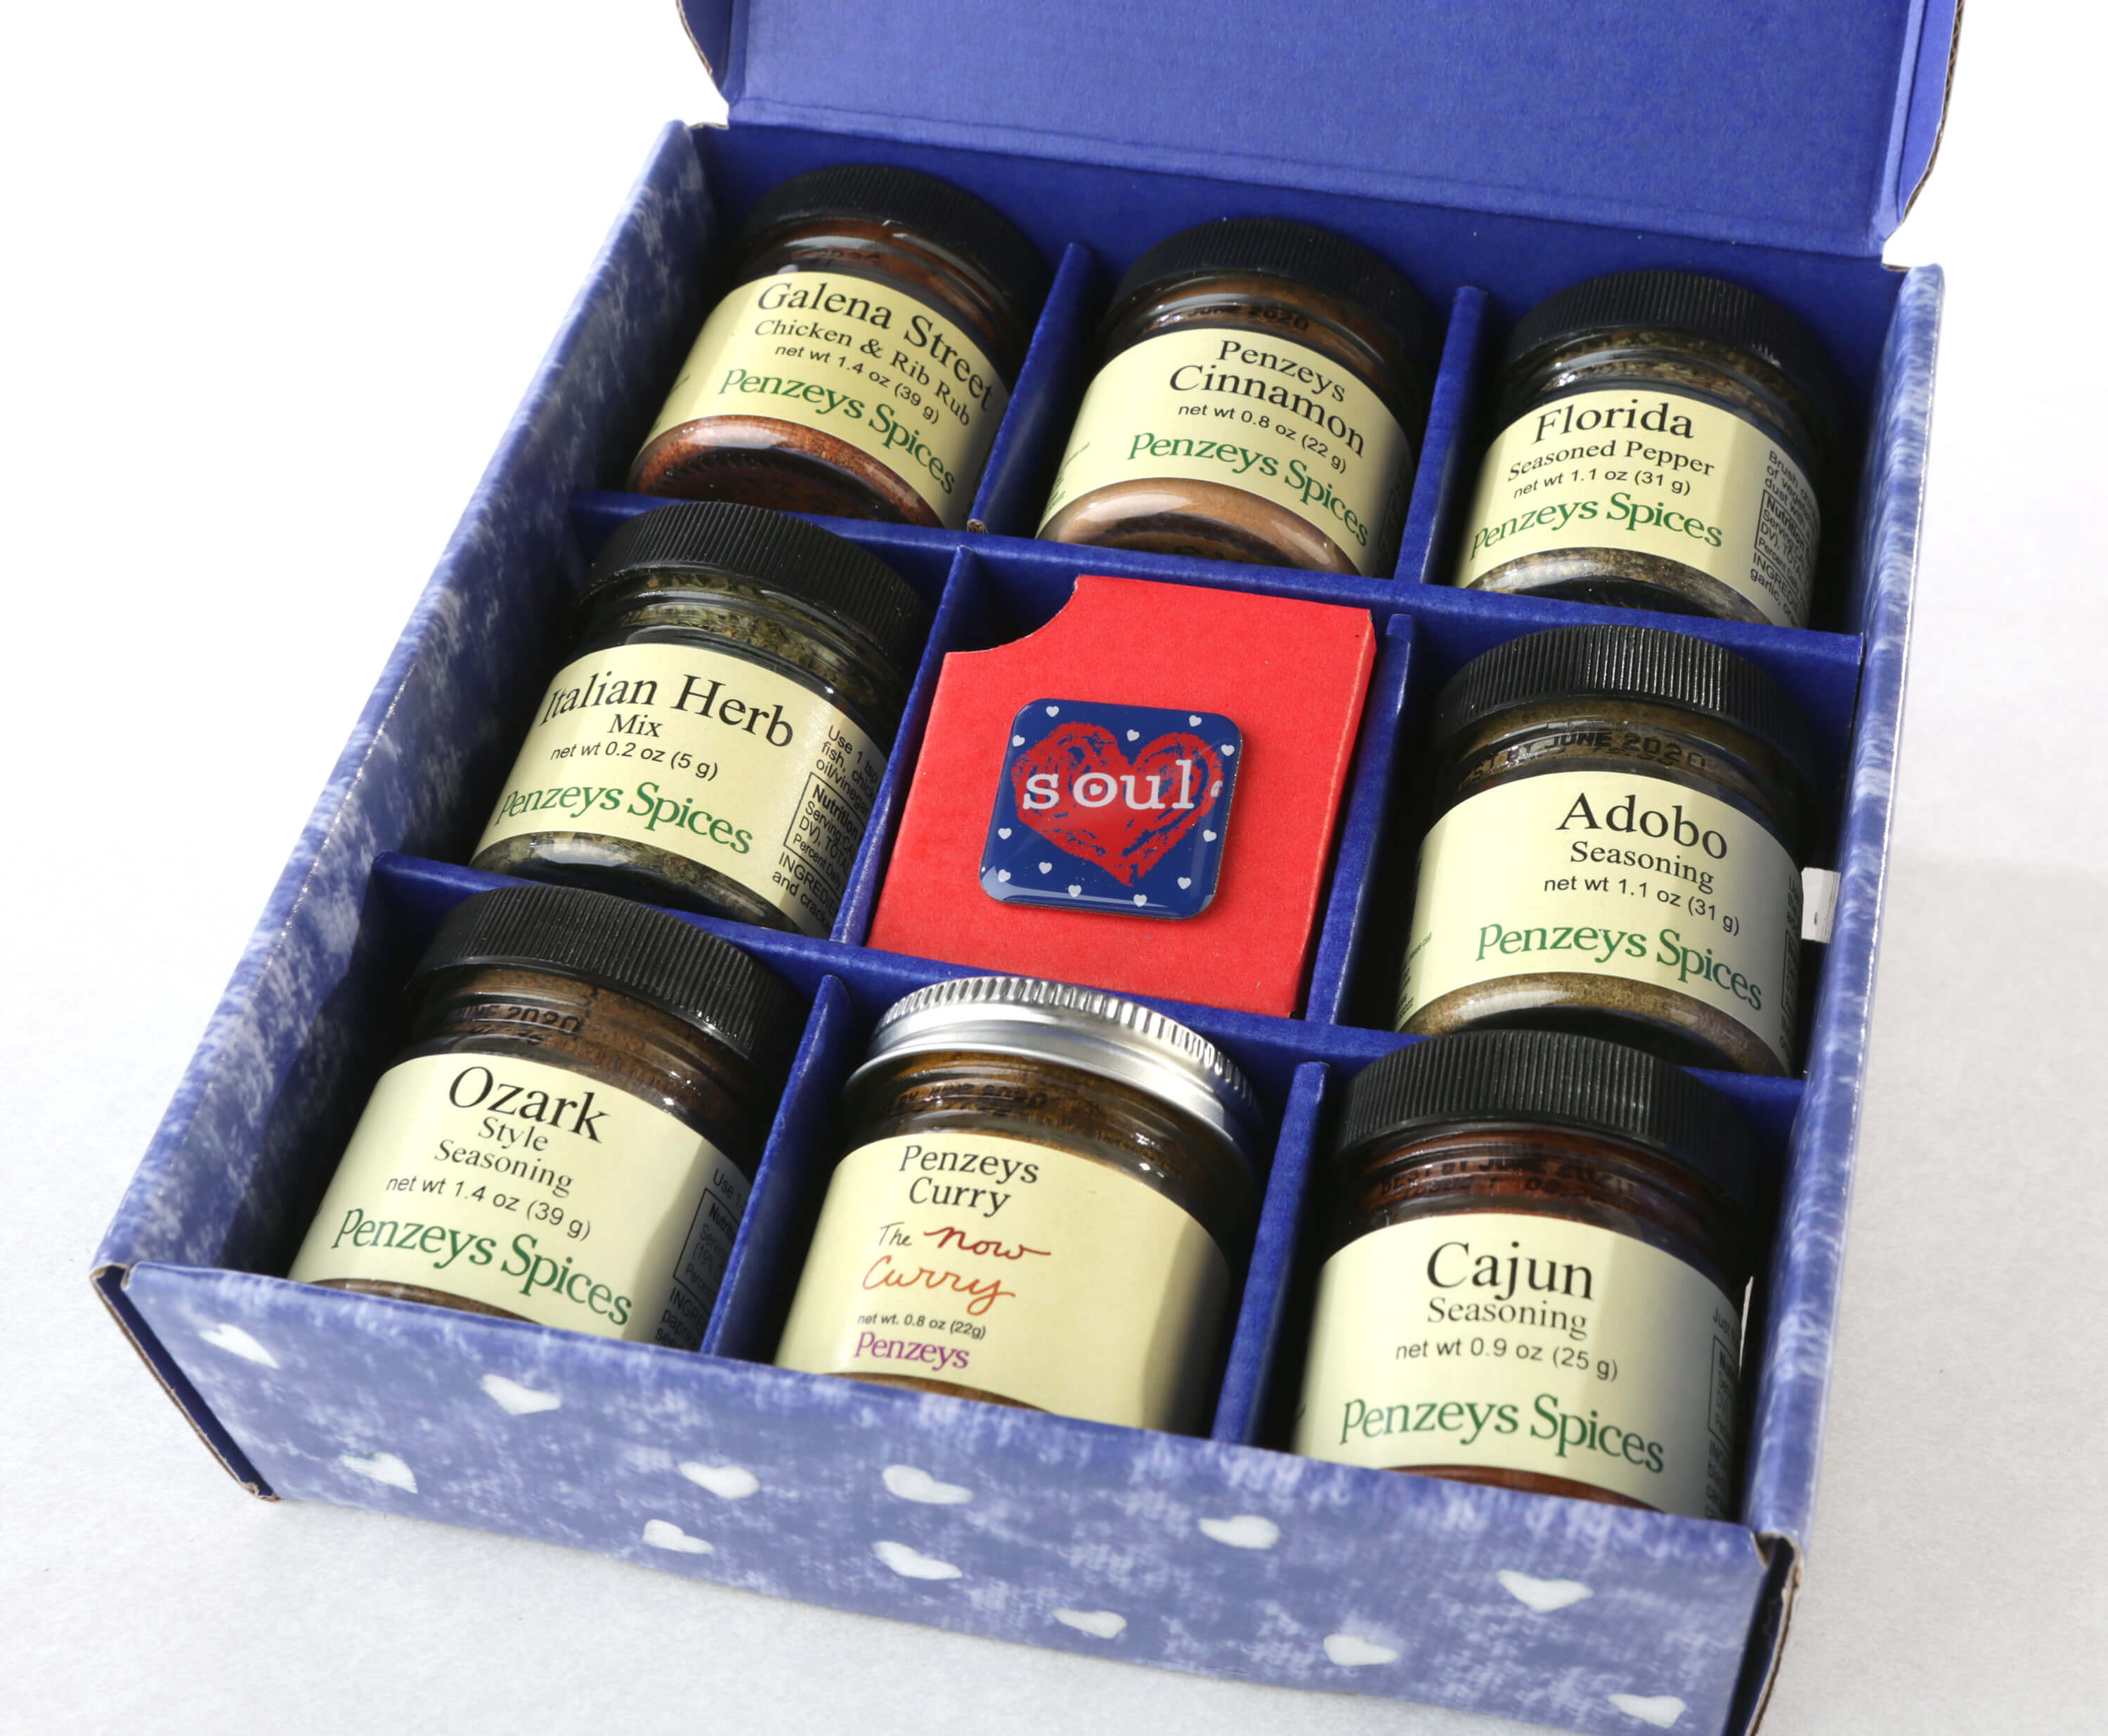 American Heart and Soul Spice gift box